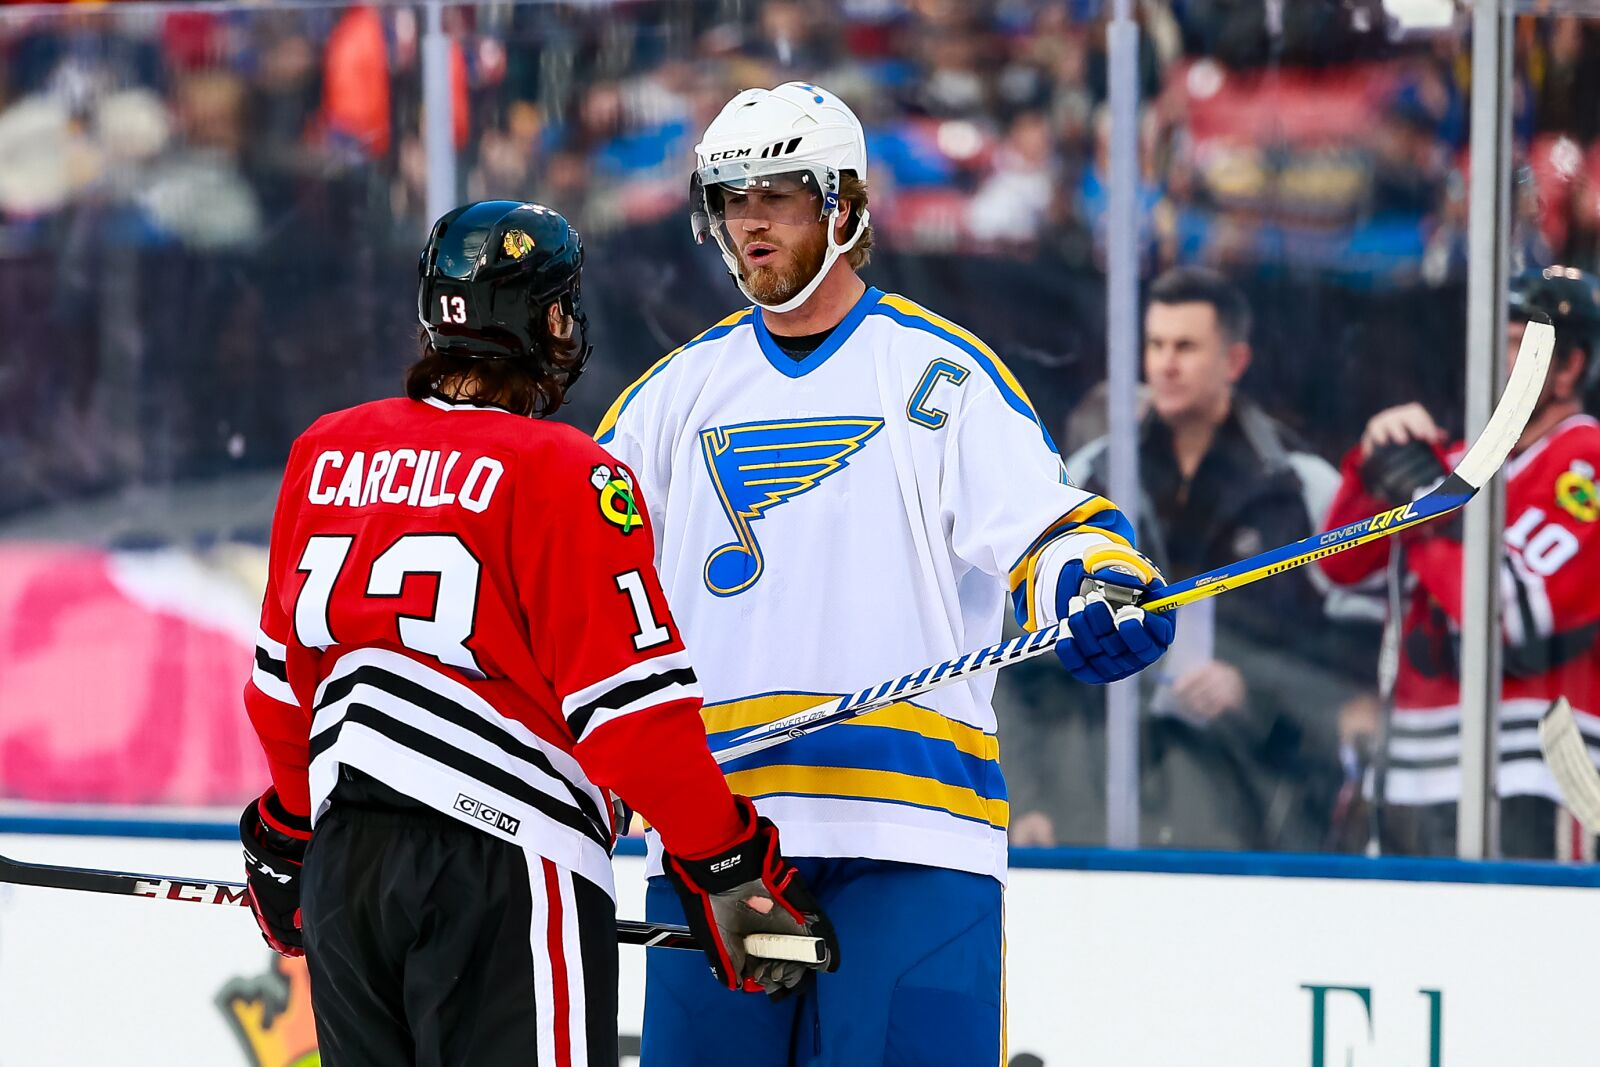 St. Louis Blues: Chris Pronger Traded To Blues, A Look Back